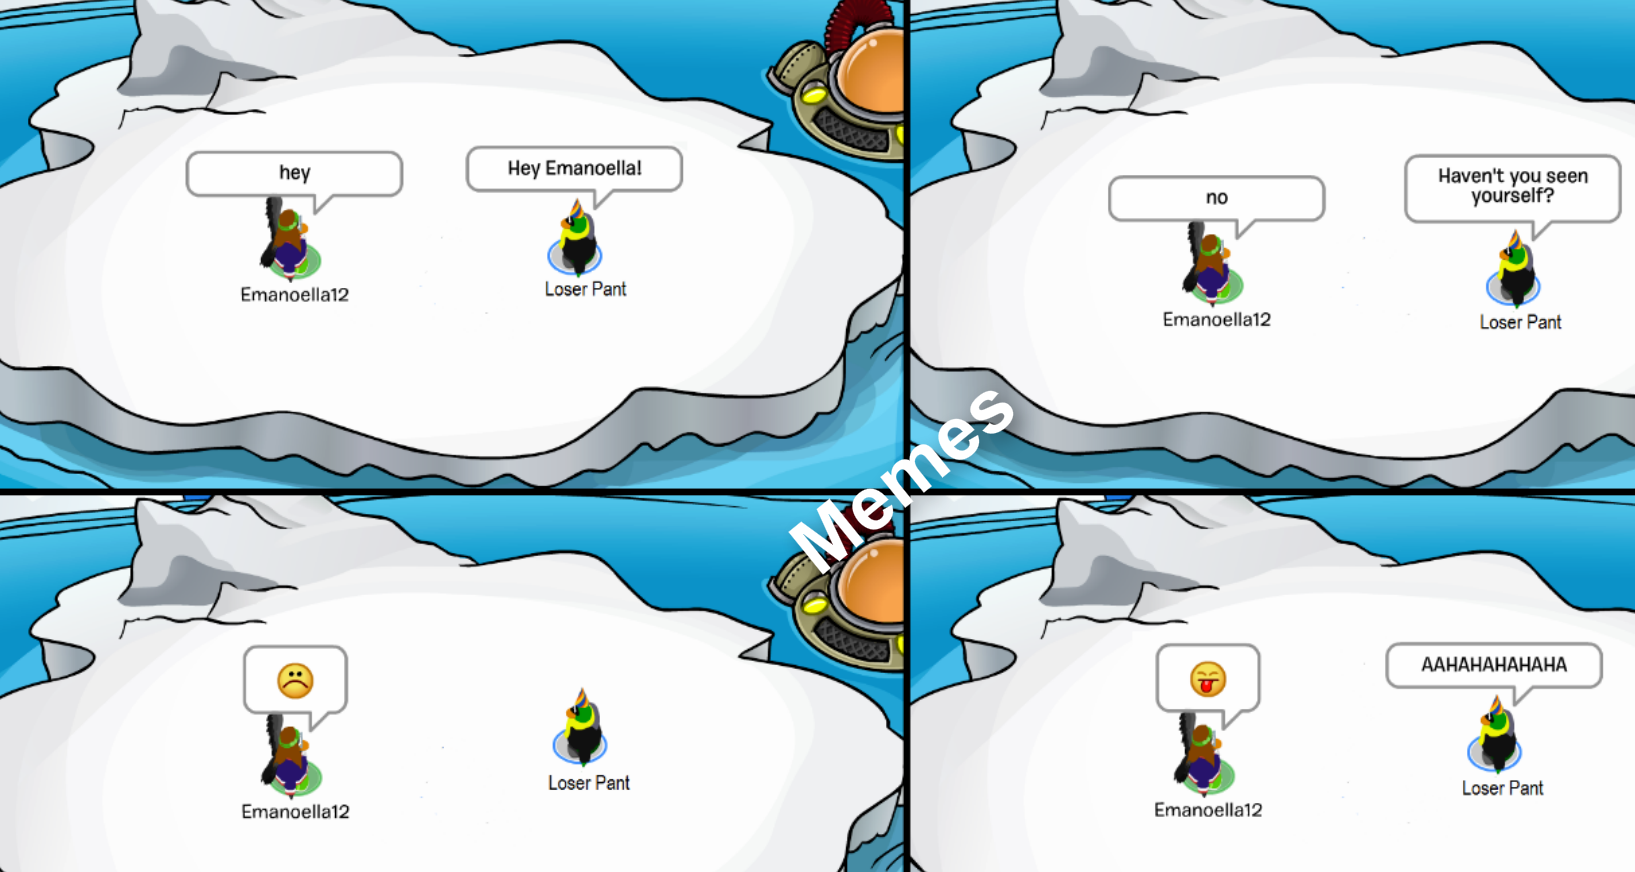 Club Penguin Memes: Never See Yourself - Episode 6